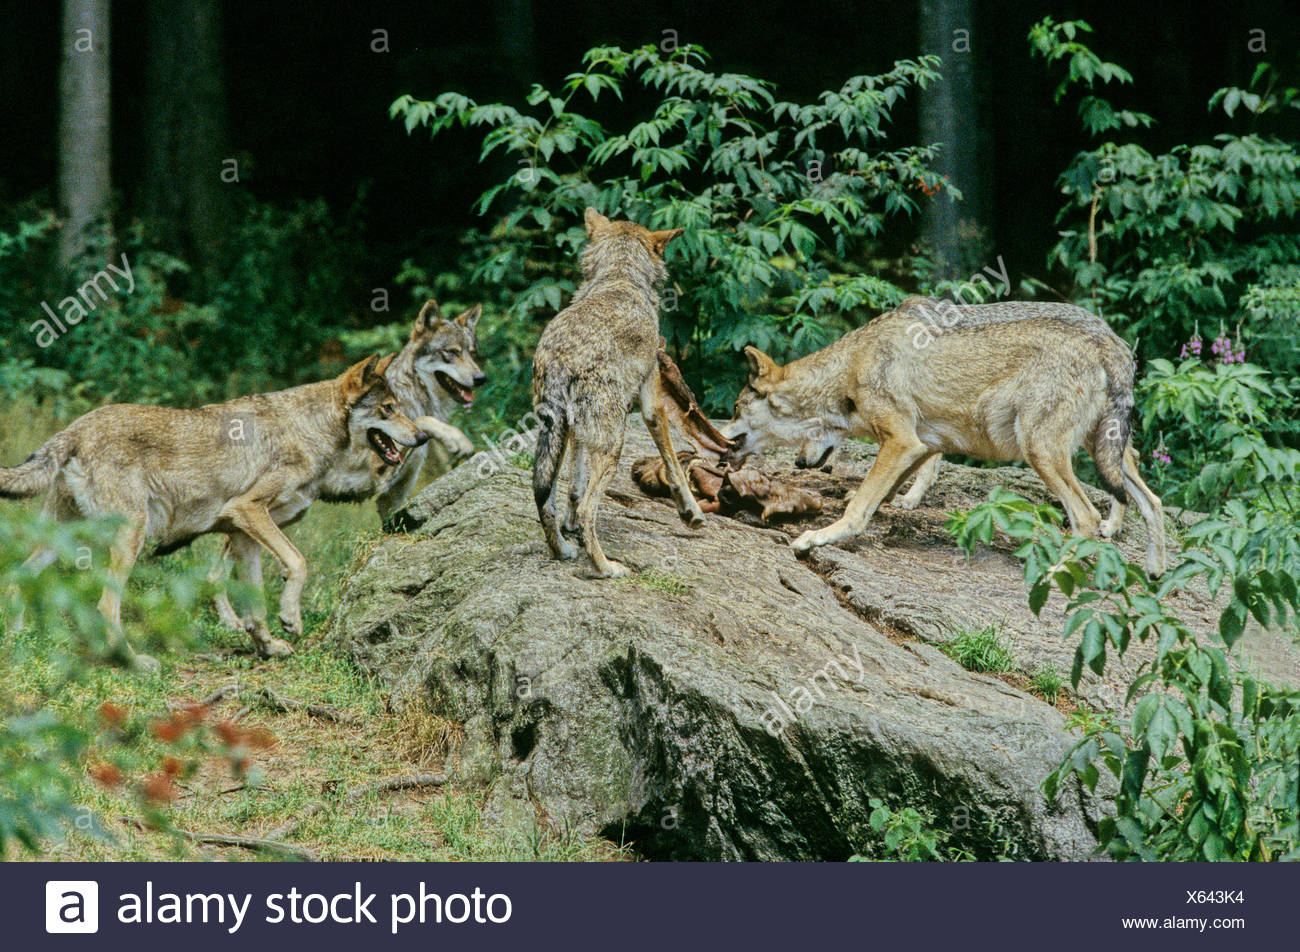 wolf gray wolf wolf animal canis lupus wolves group prey food